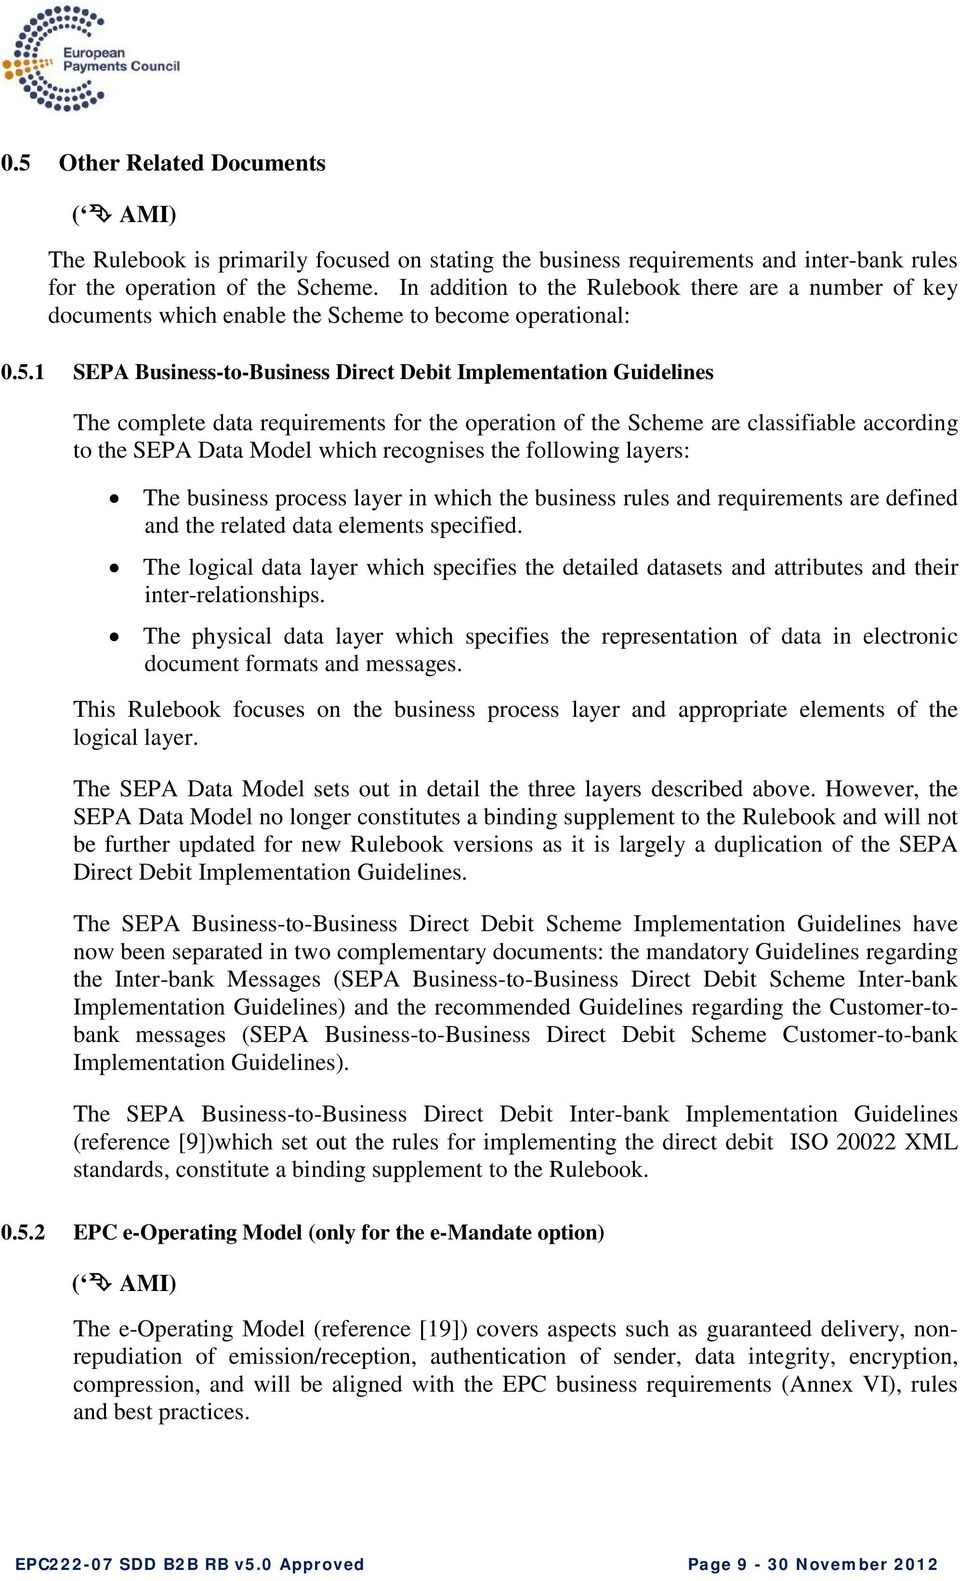 1 SEPA Business-to-Business Direct Debit Implementation Guidelines The complete data requirements for the operation of the Scheme are classifiable according to the SEPA Data Model which recognises